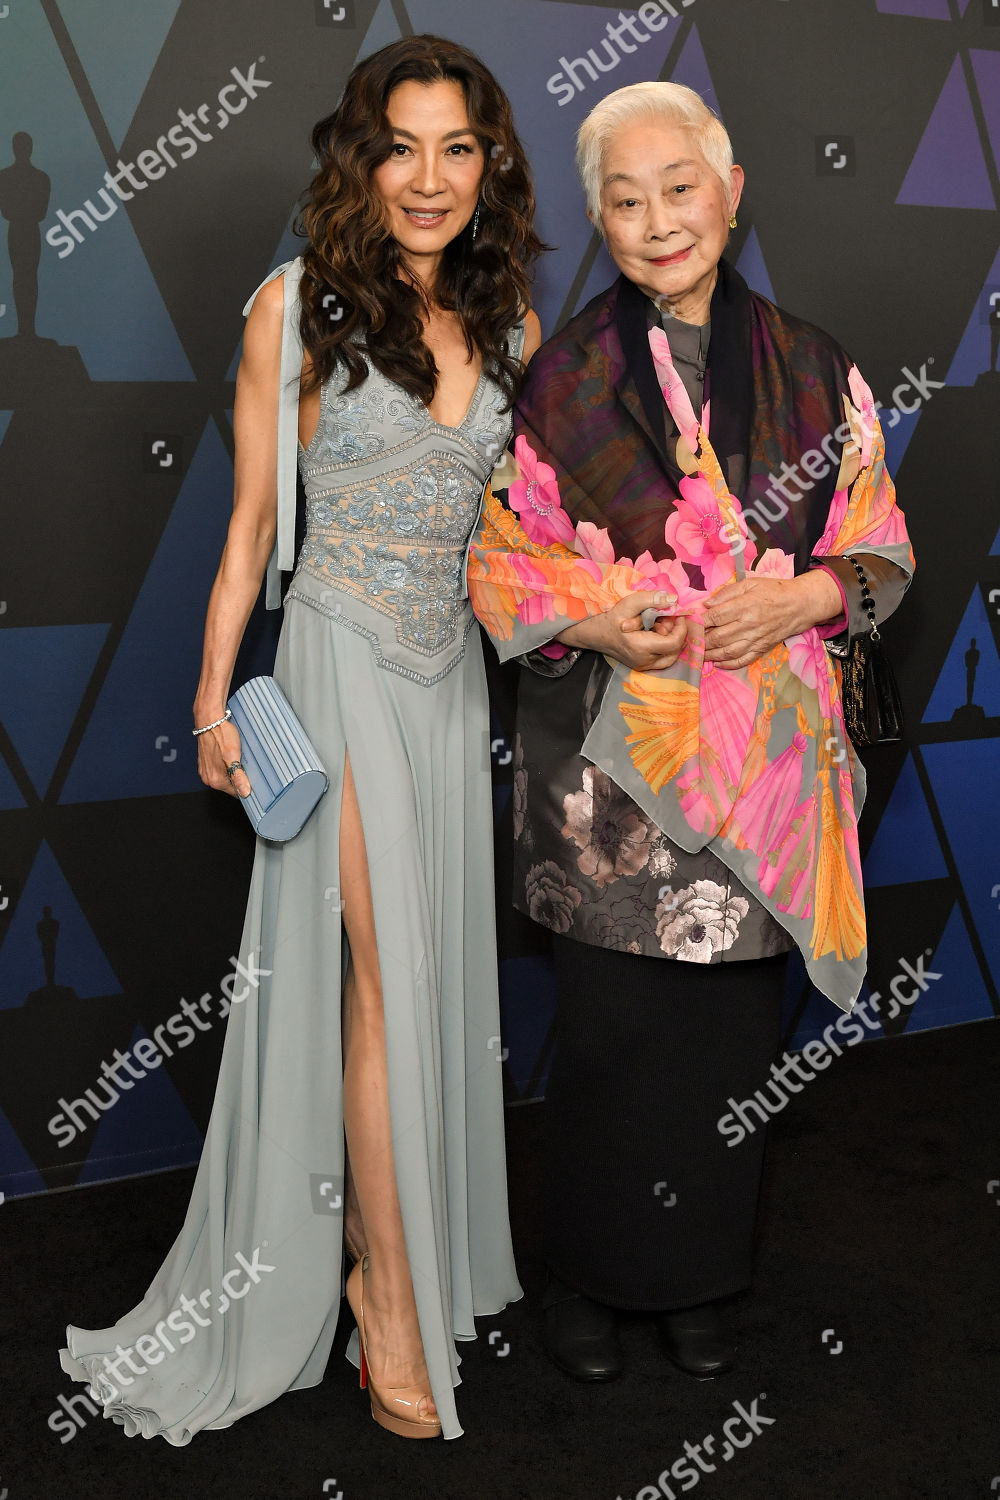 Discussion on this topic: Jamie Chung, kristen-connolly/